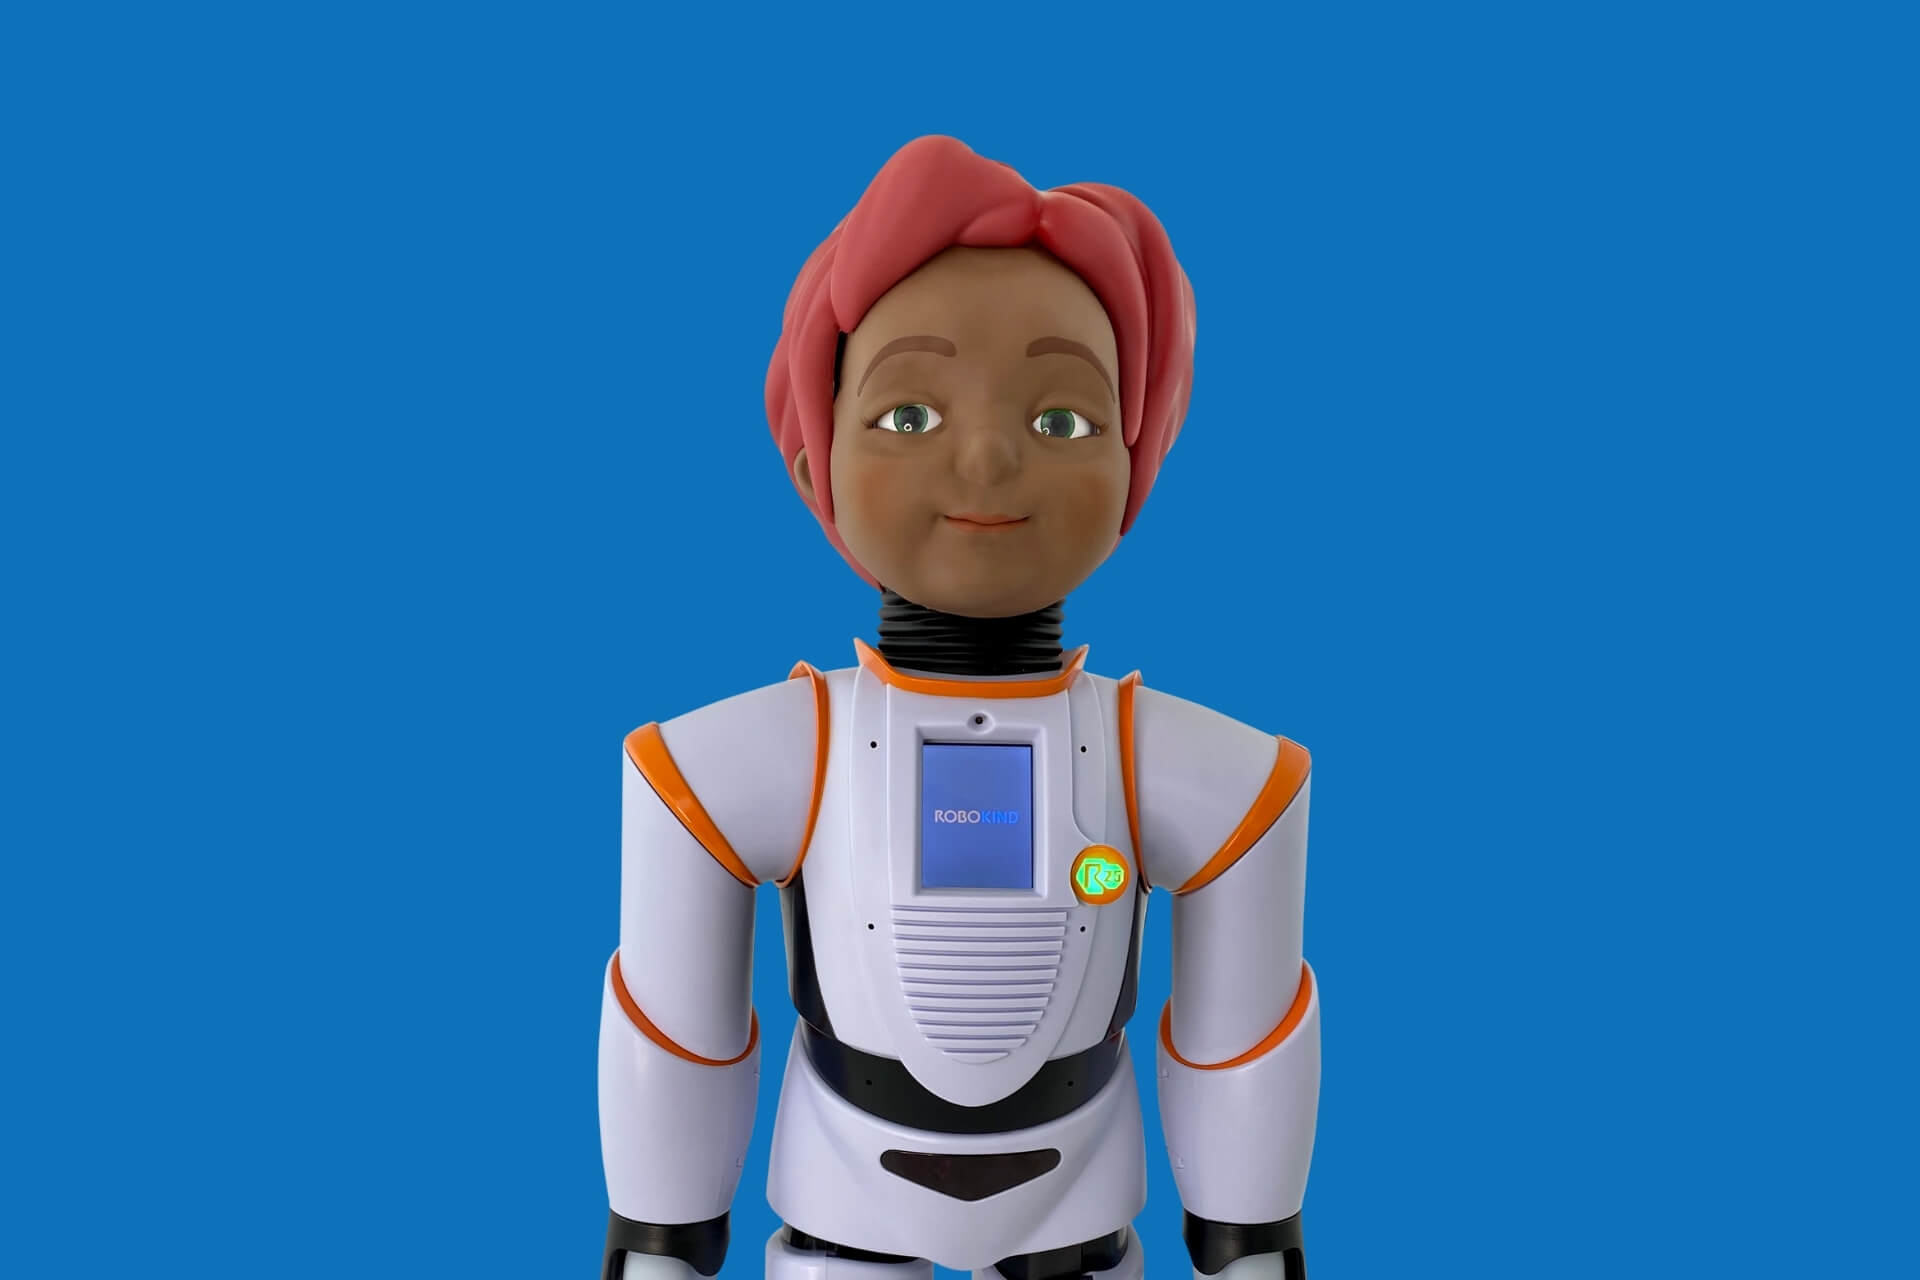 Jemi, Assistive SEL Robots for Students With Autism